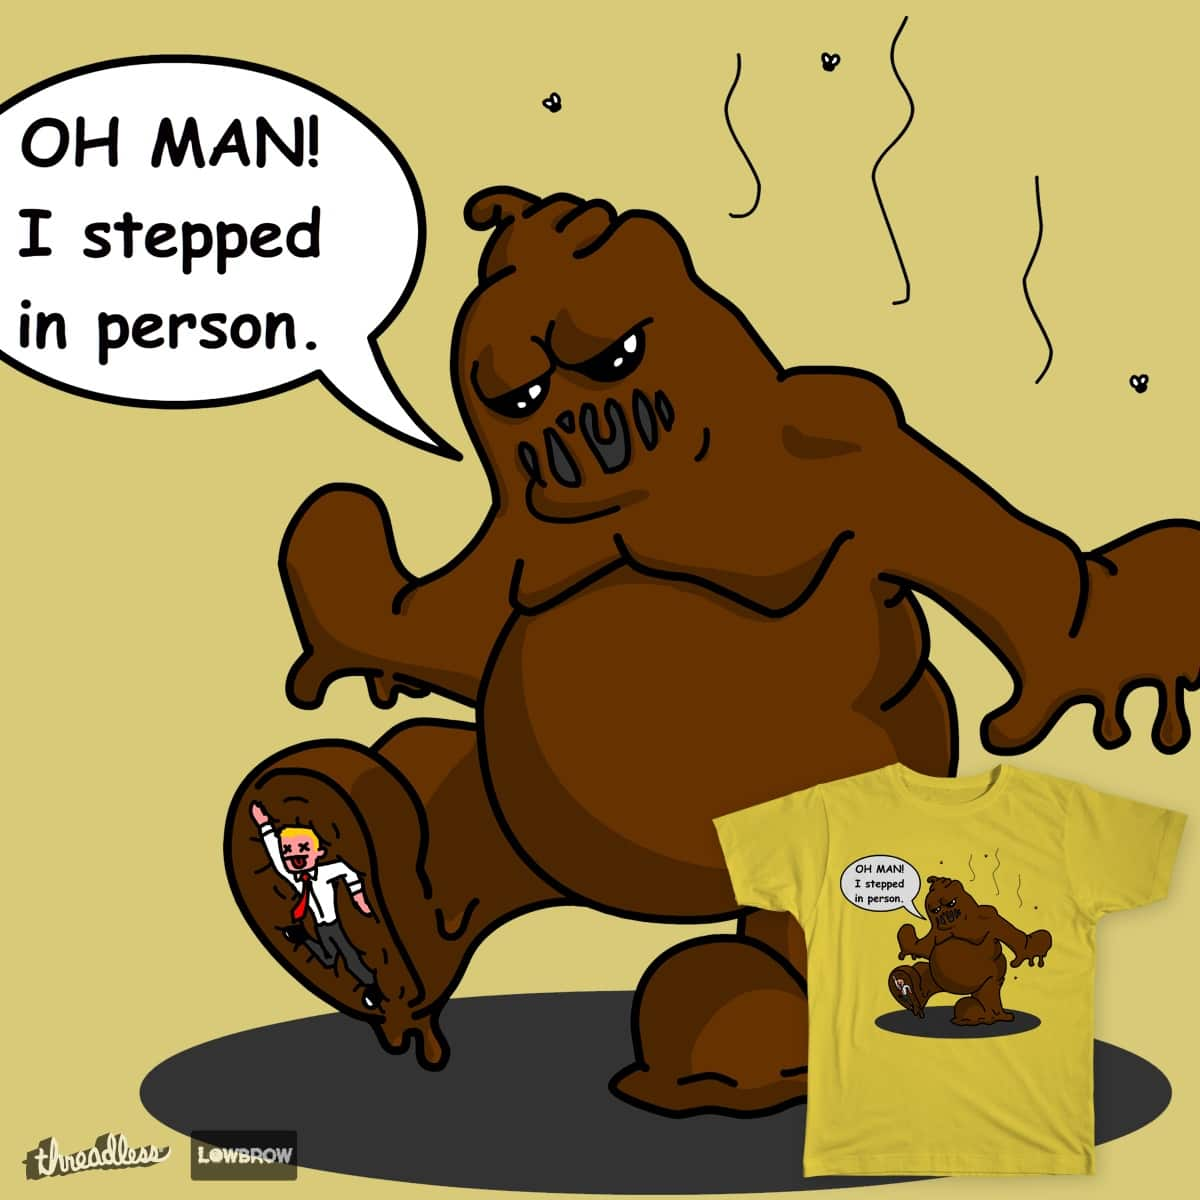 Crap Stepping in Man by boomface on Threadless